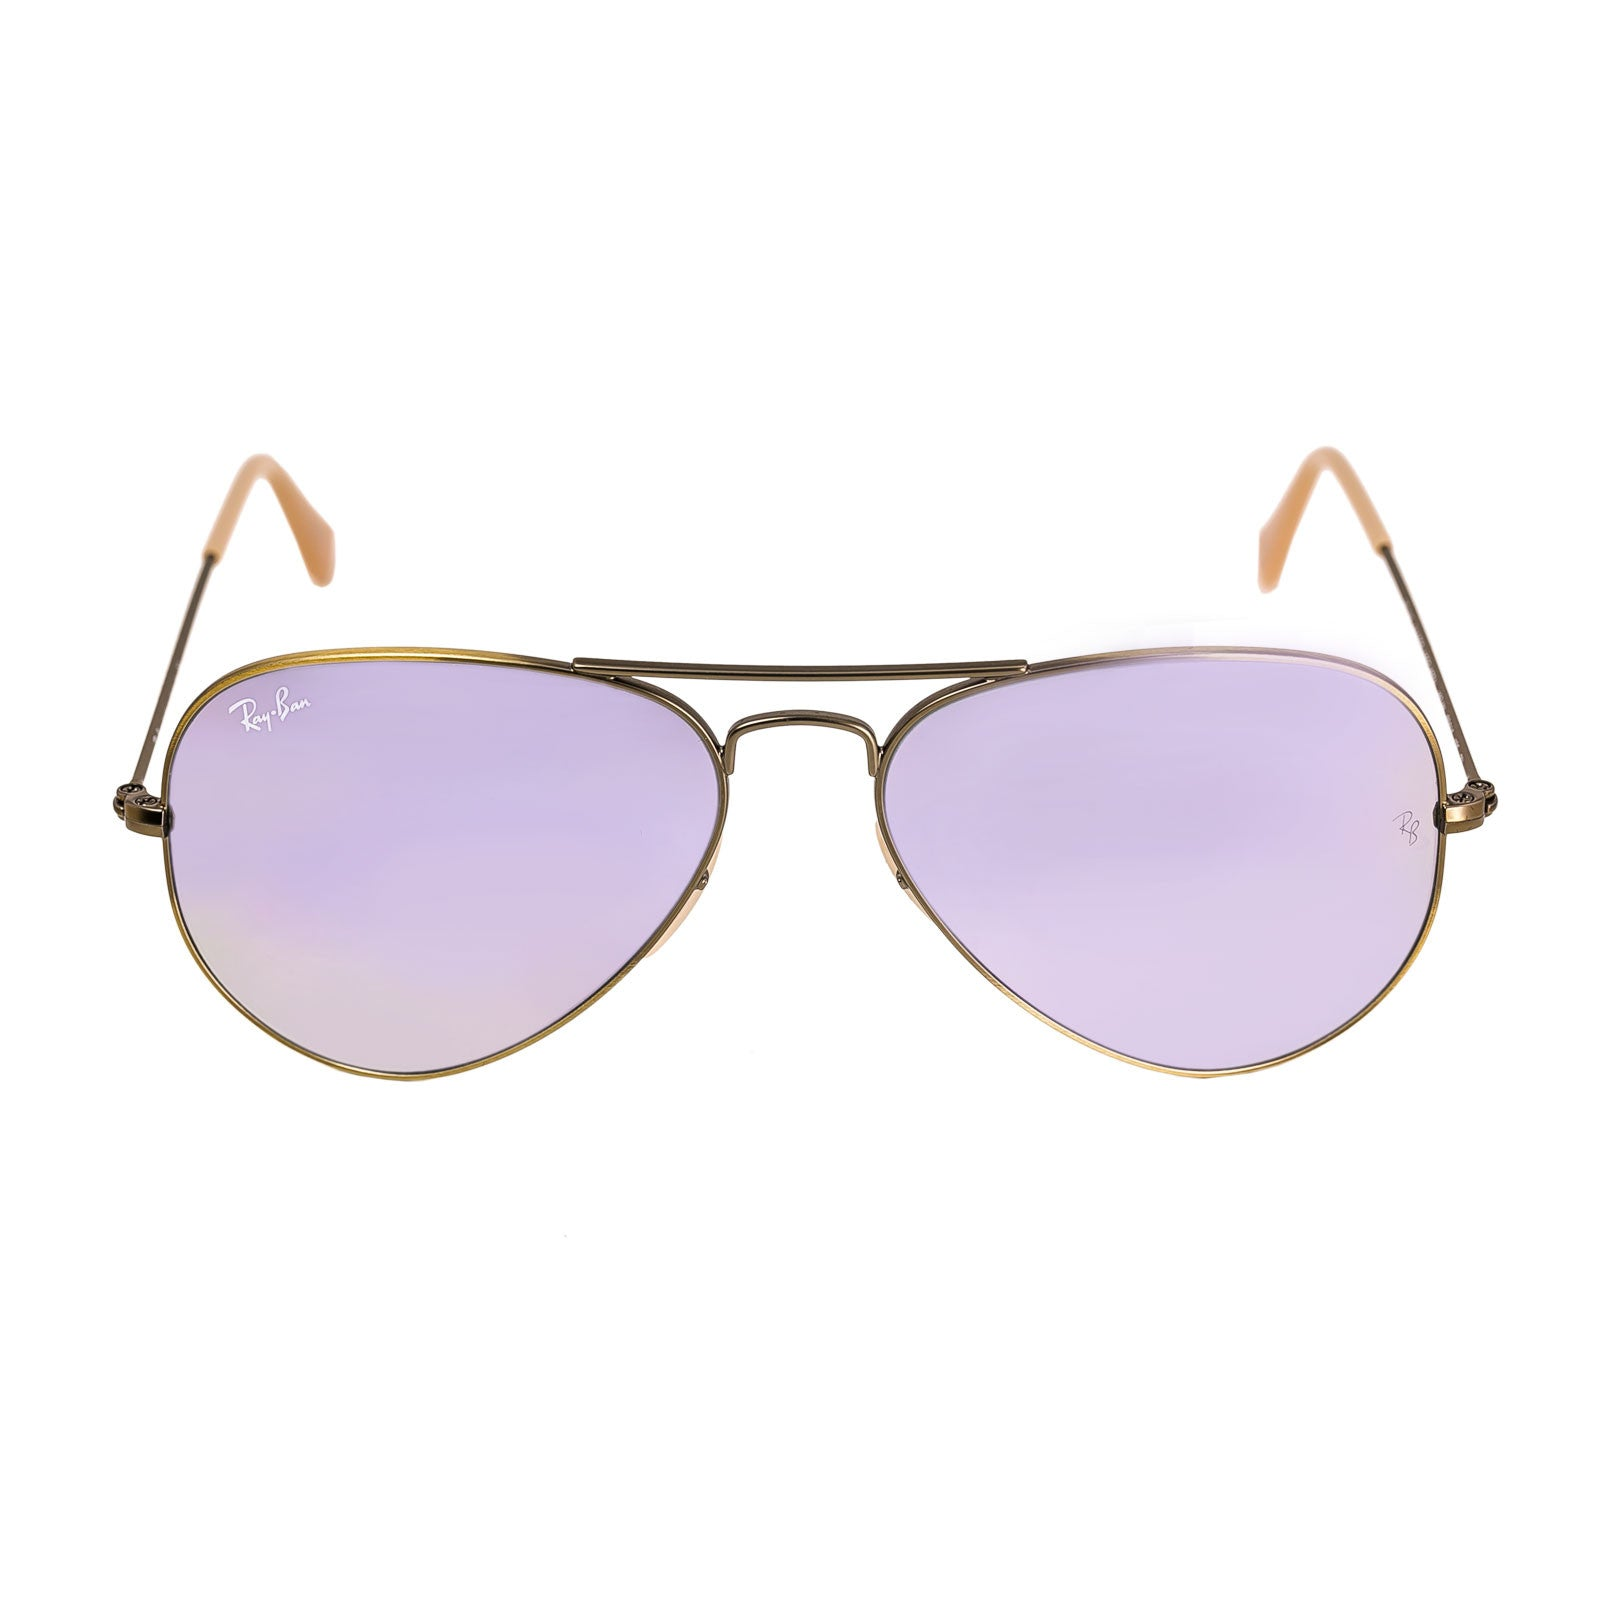 Ray-Ban RB 3025 167-4K 55 Unisex Aviator Lilac Mirror Flash Lenses Bronze-Copper Metal Frame Sunglasses